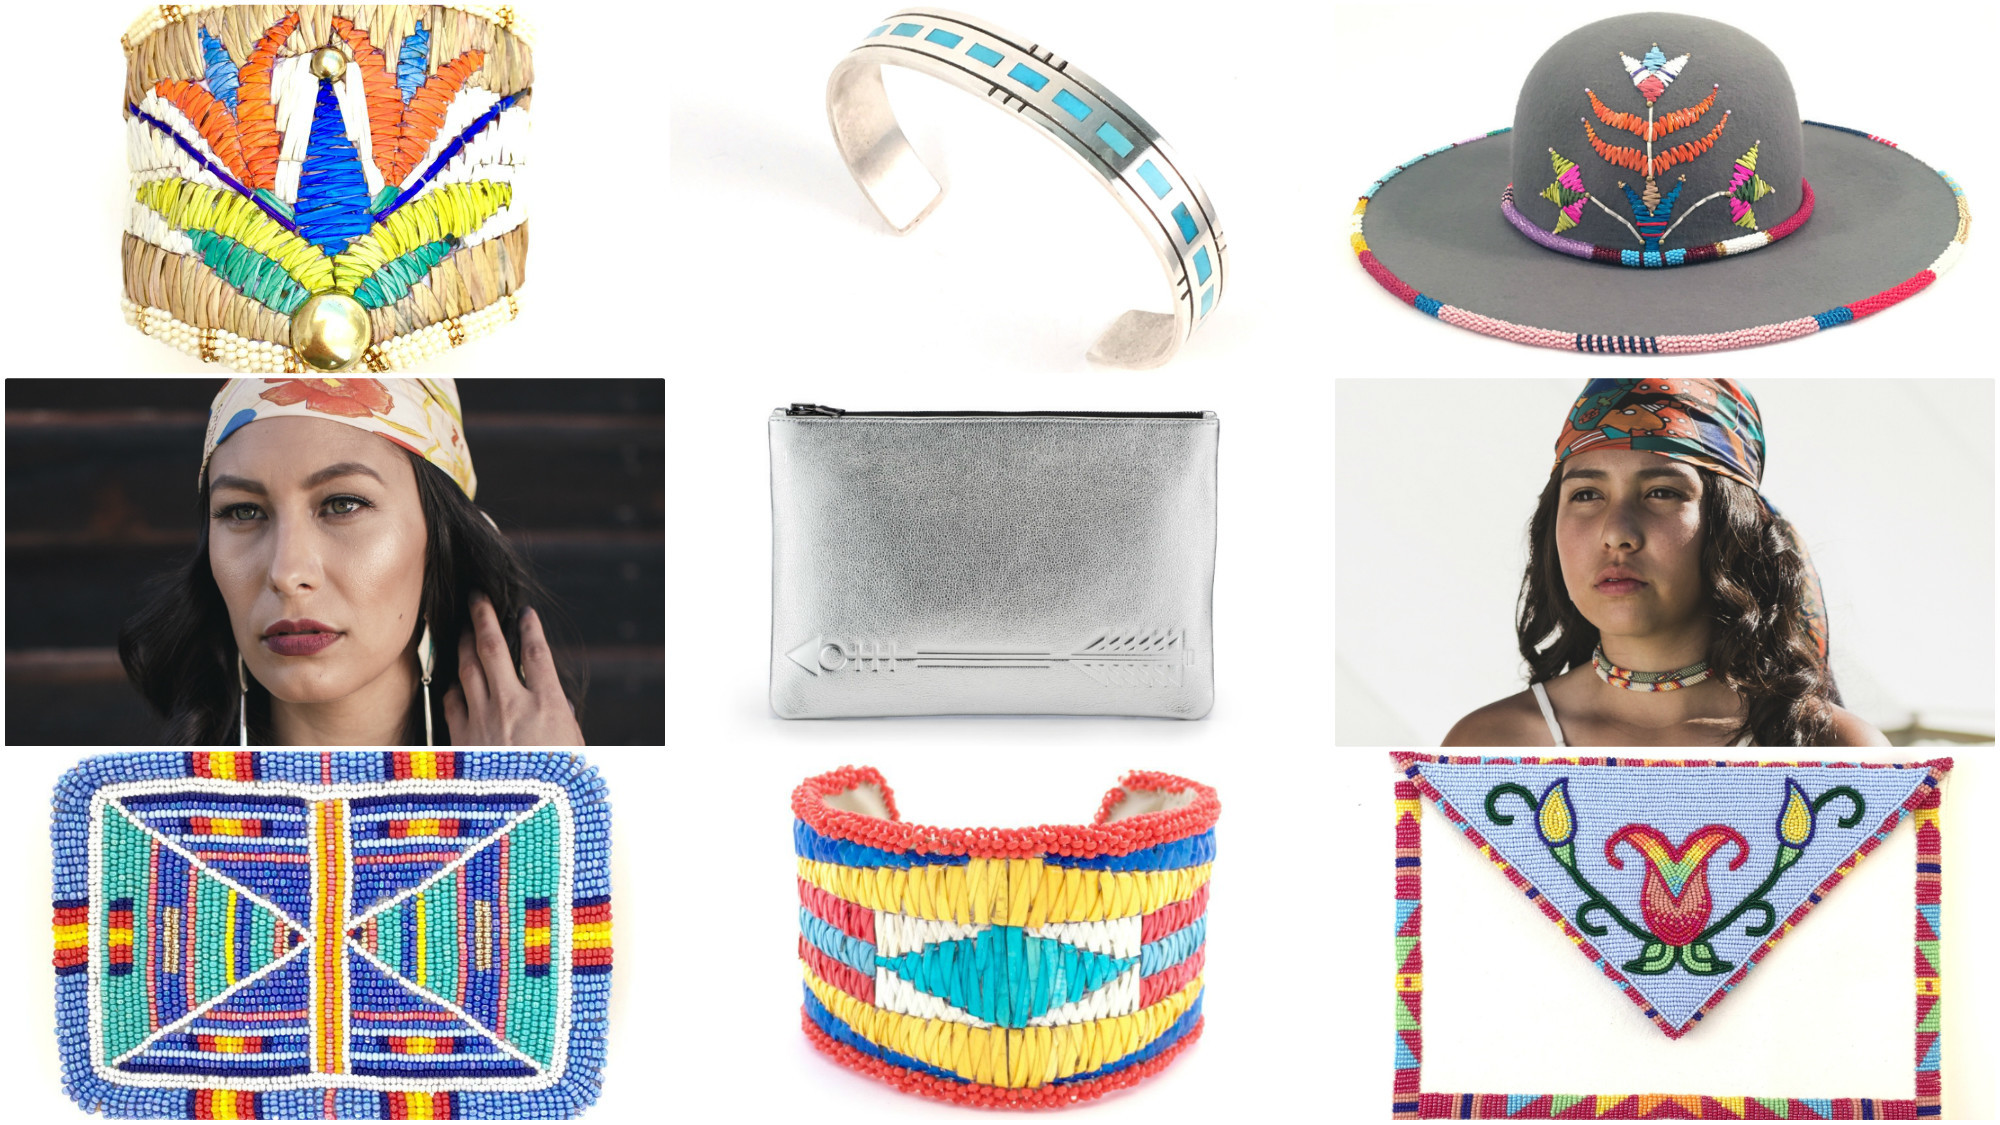 B.Yellowtail Collective pieces are designed by Native American artists across the Great Plains tribal regions.